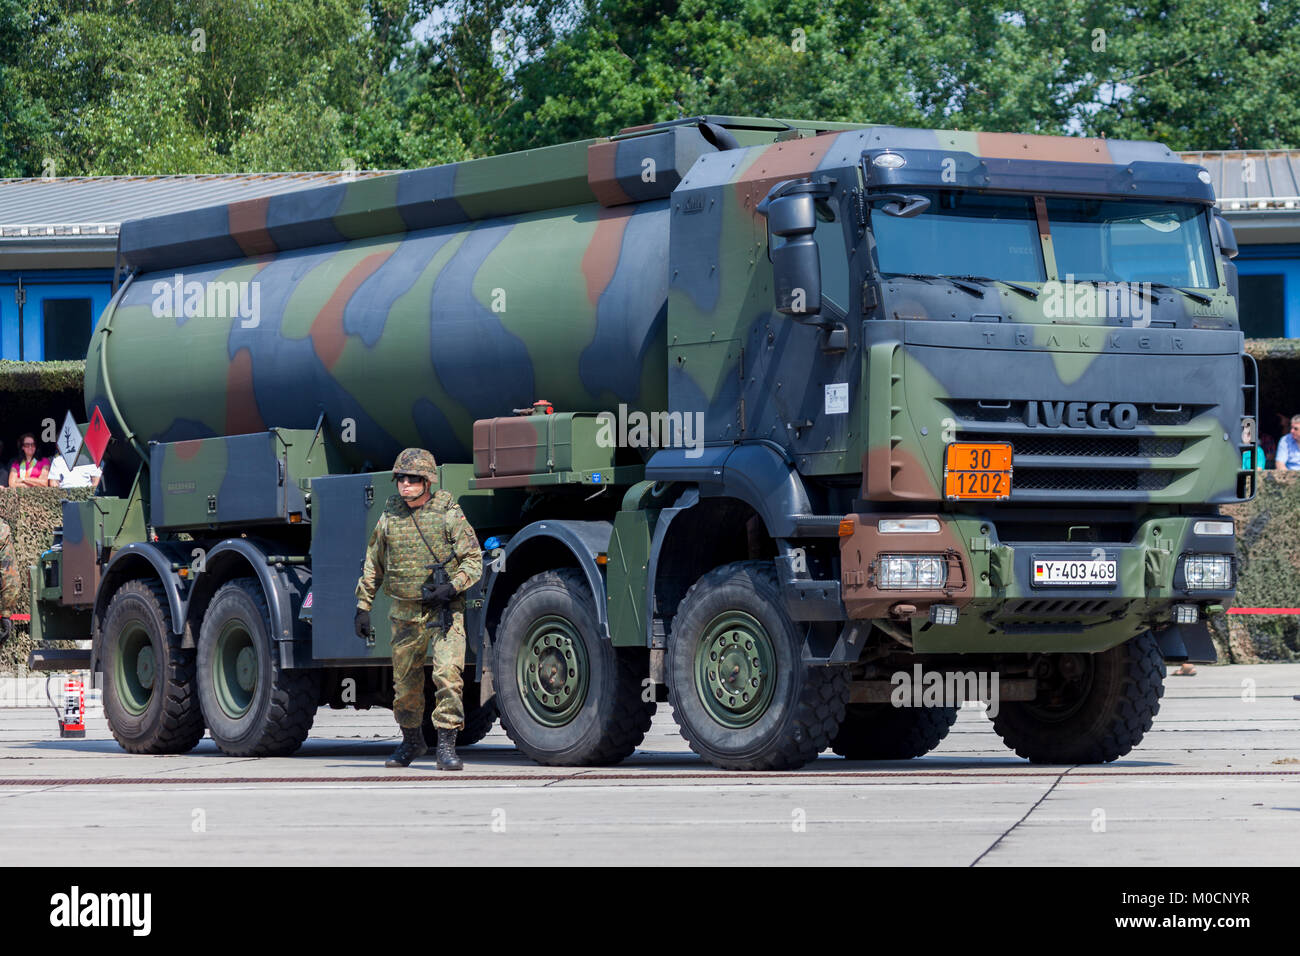 BURG / GERMANY - JUNE 25, 2016: german military Iveco 8x8 tanker at open day in barrack burg - Stock Image